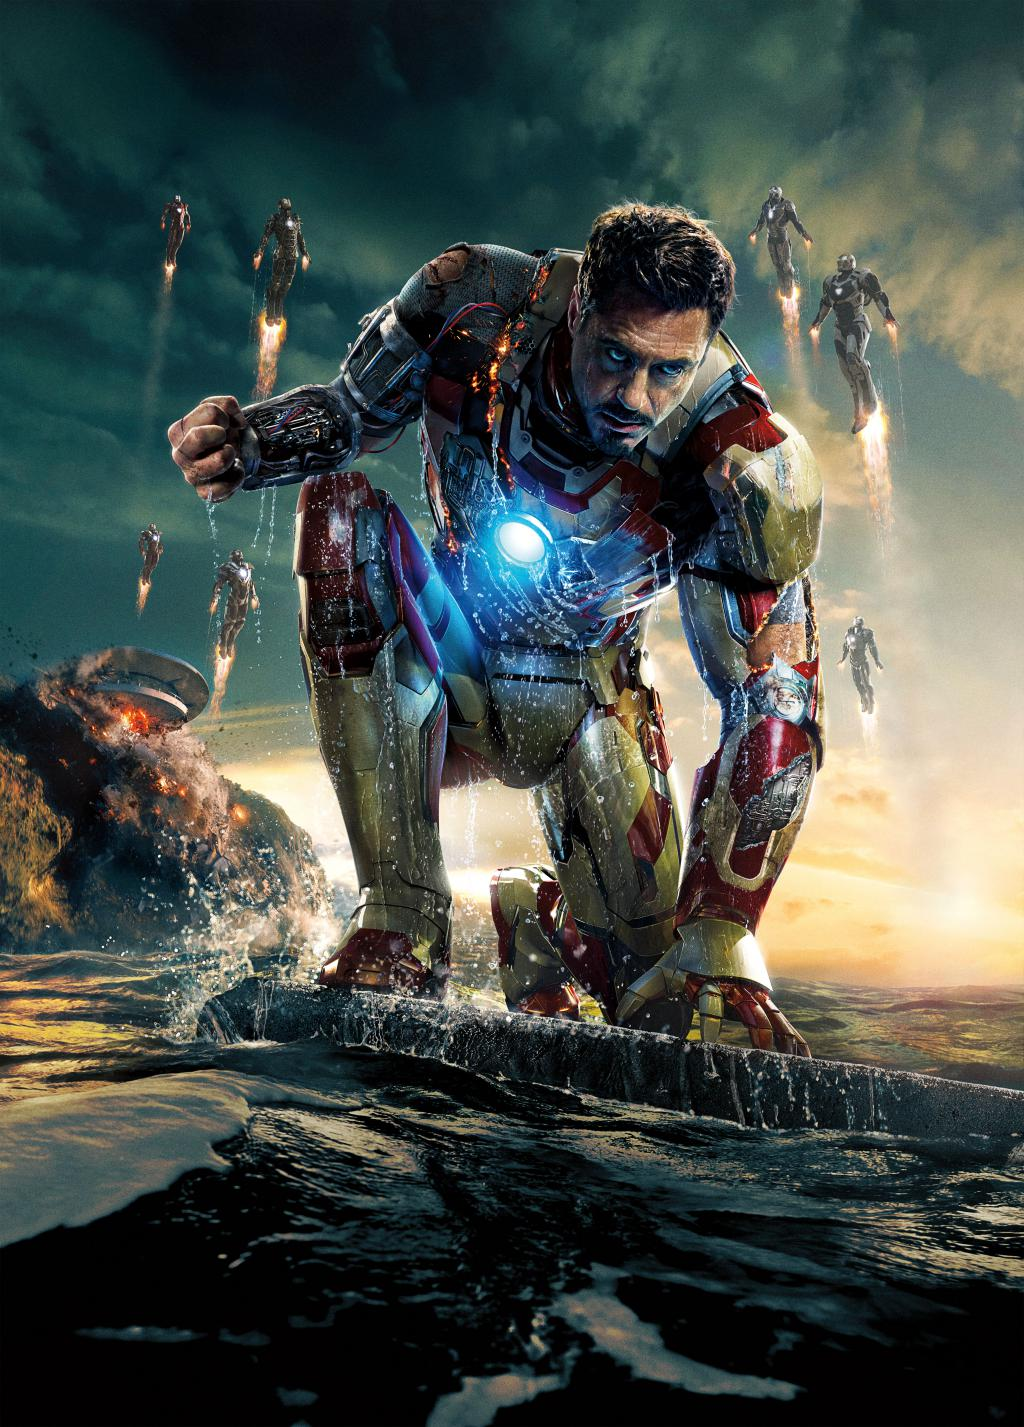 Wallpaper Affiche Iron Man 3 sur l eau Iron Man